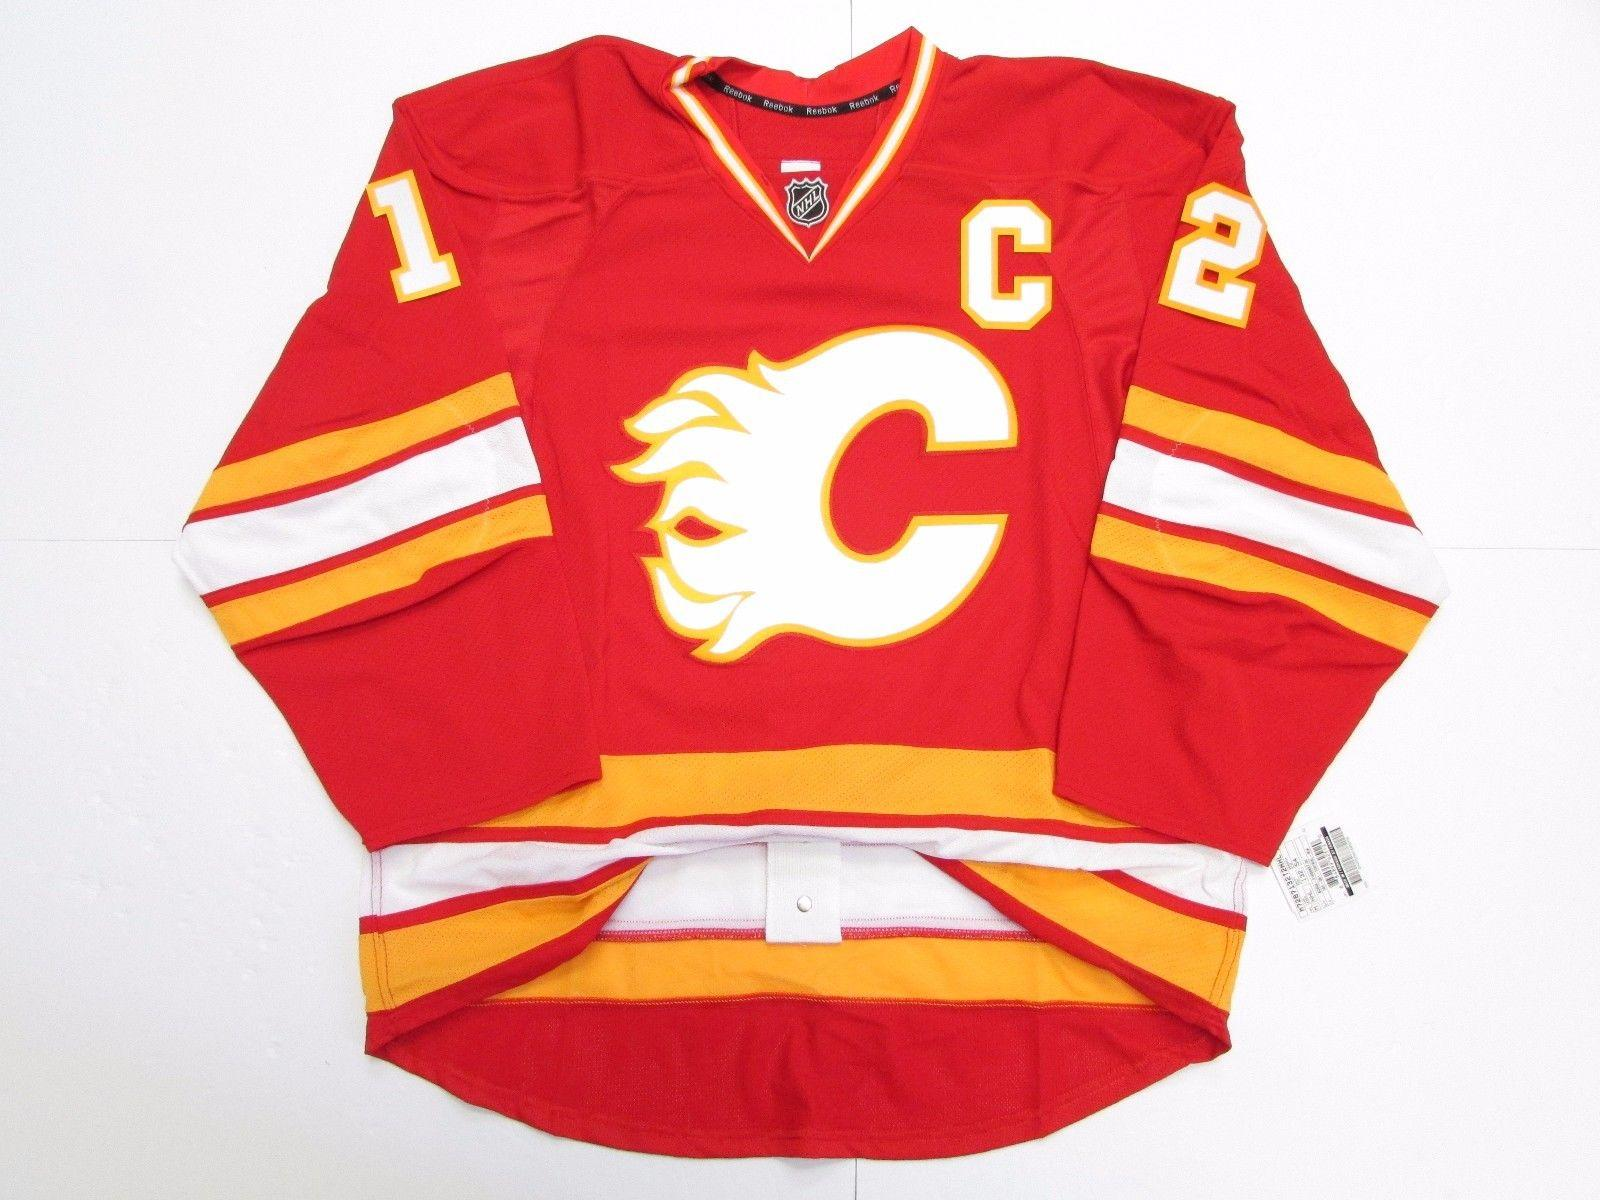 f88900015 2019 Cheap Custom IGINLA CALGARY FLAMES VINTAGE JERSEY Stitch Add Any  Number Any Name Mens Hockey Jersey XS 5XL From Customsportsjersey, $27.16 |  DHgate.Com